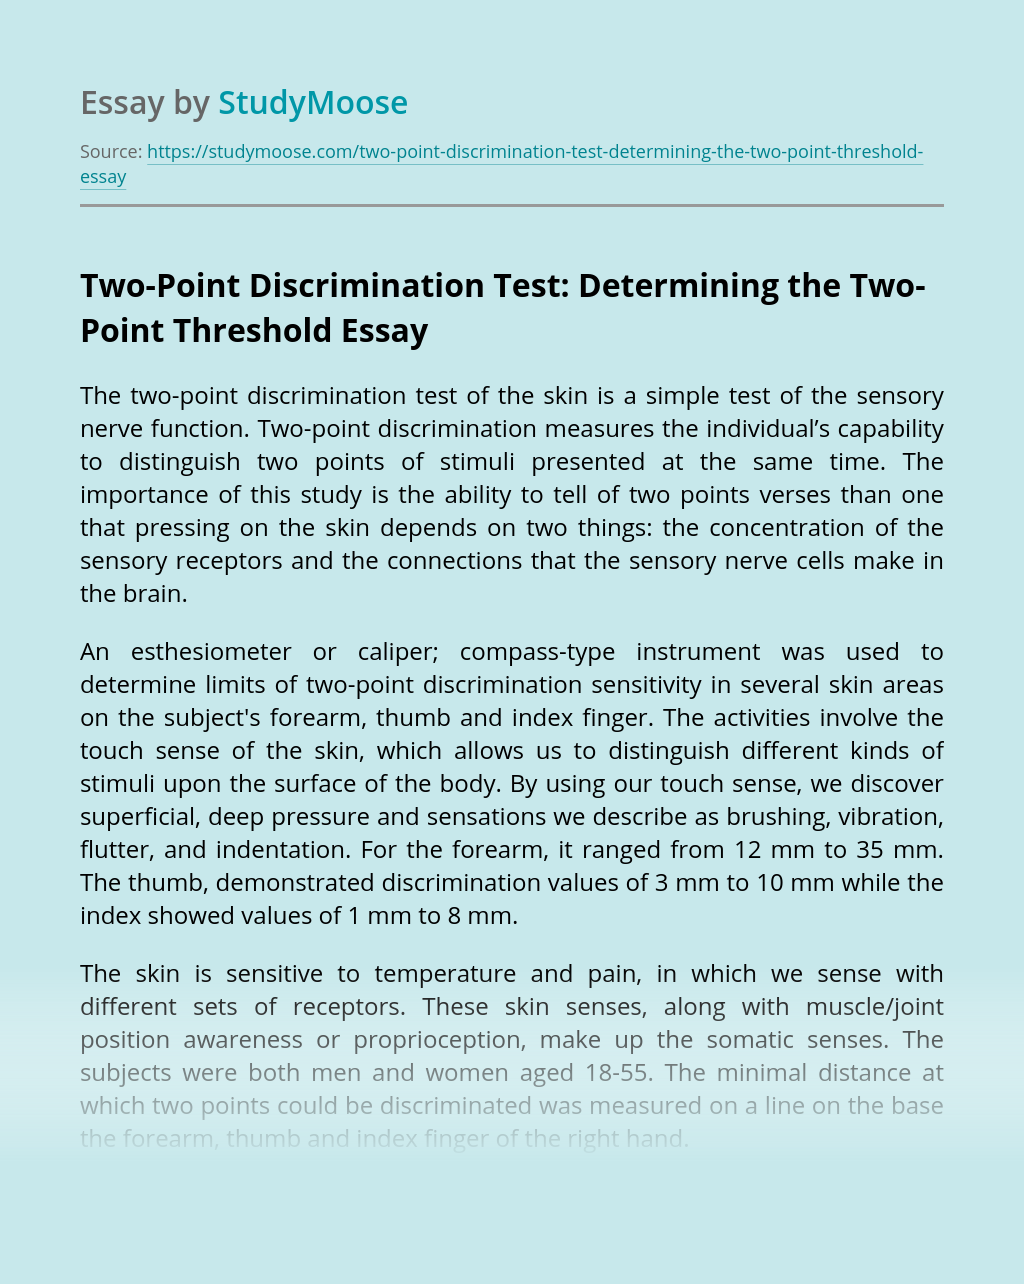 Two-Point Discrimination Test: Determining the Two-Point Threshold